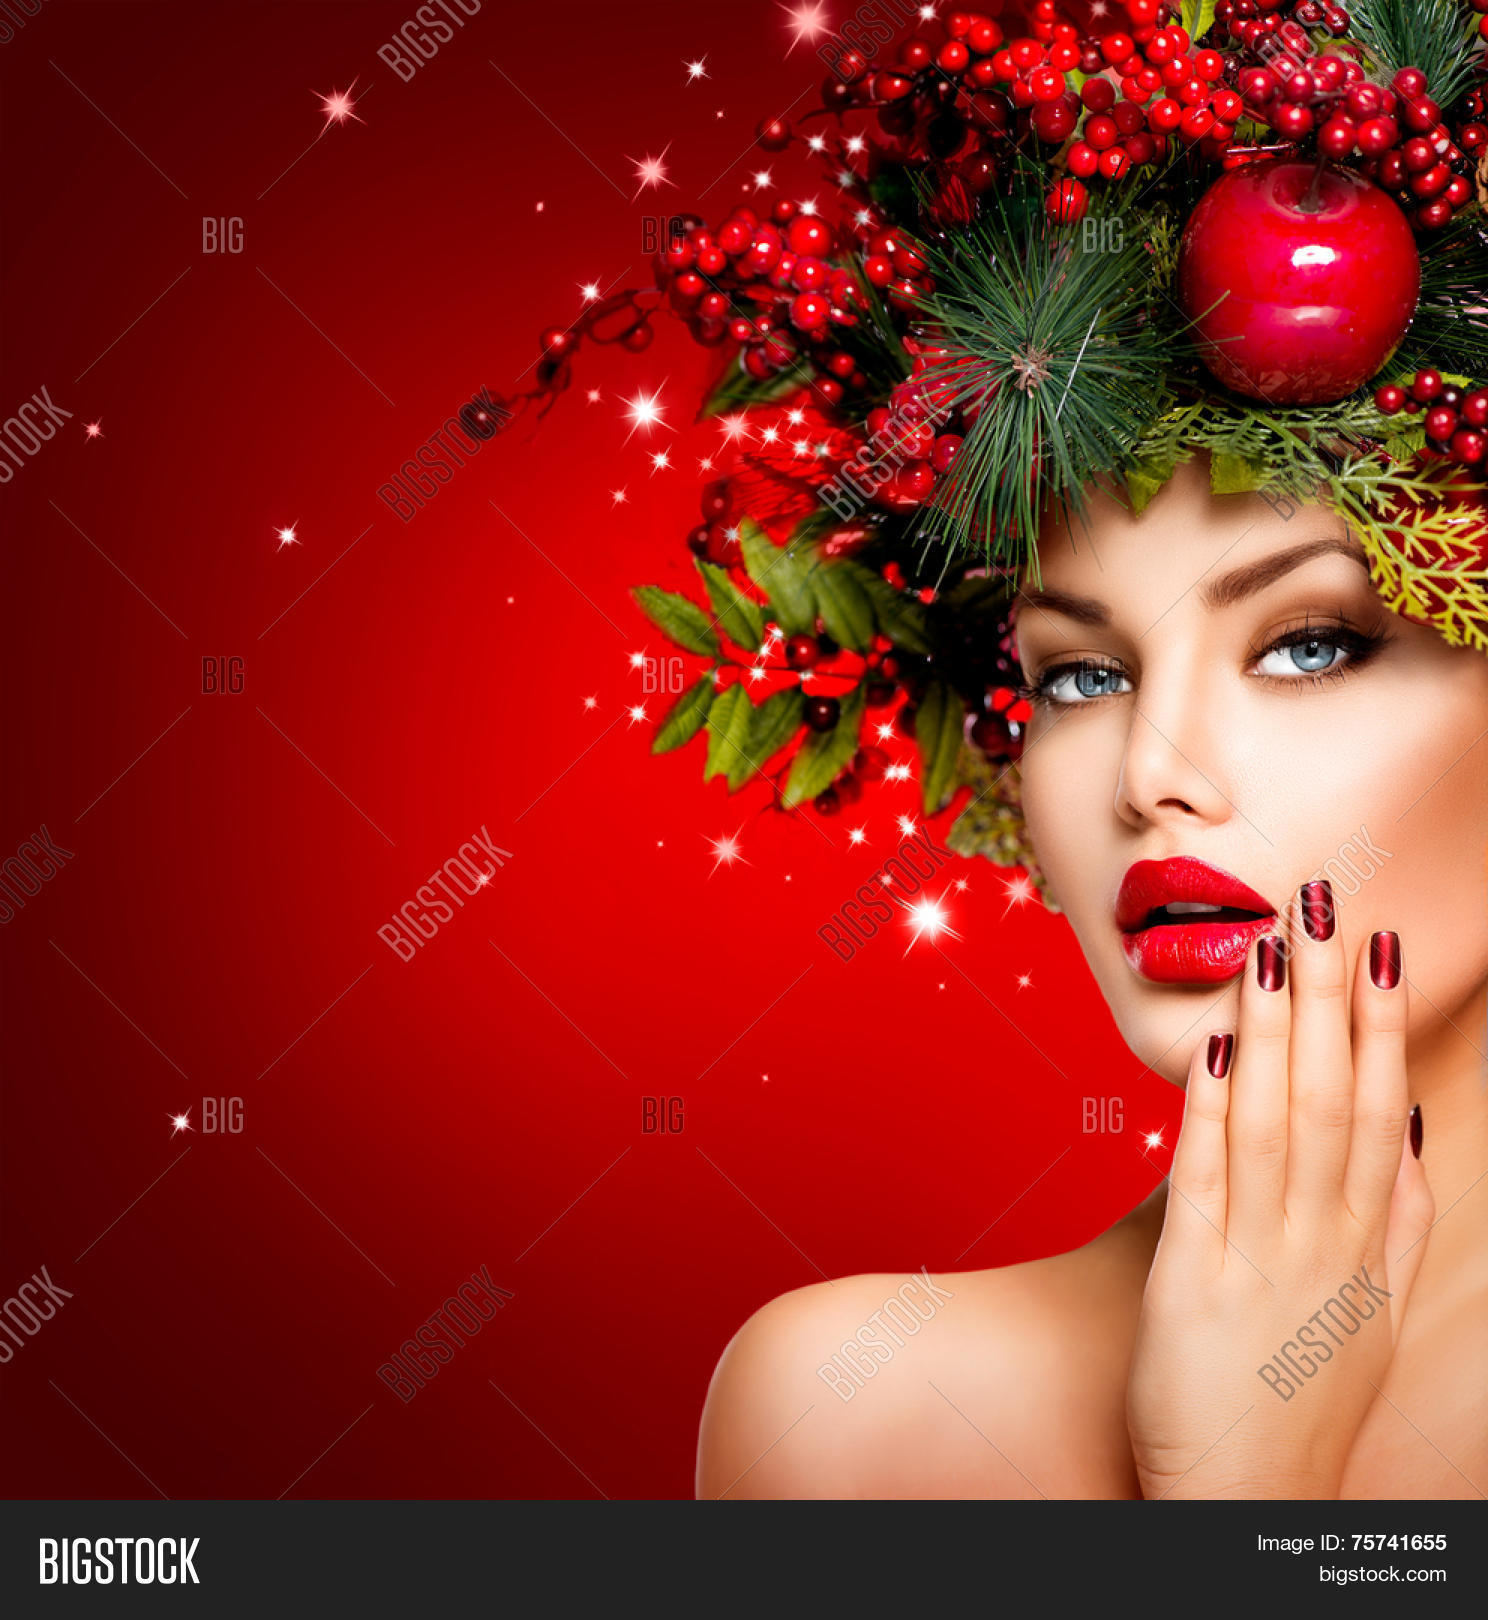 Christmas Model.Christmas Winter Woman Image Photo Free Trial Bigstock